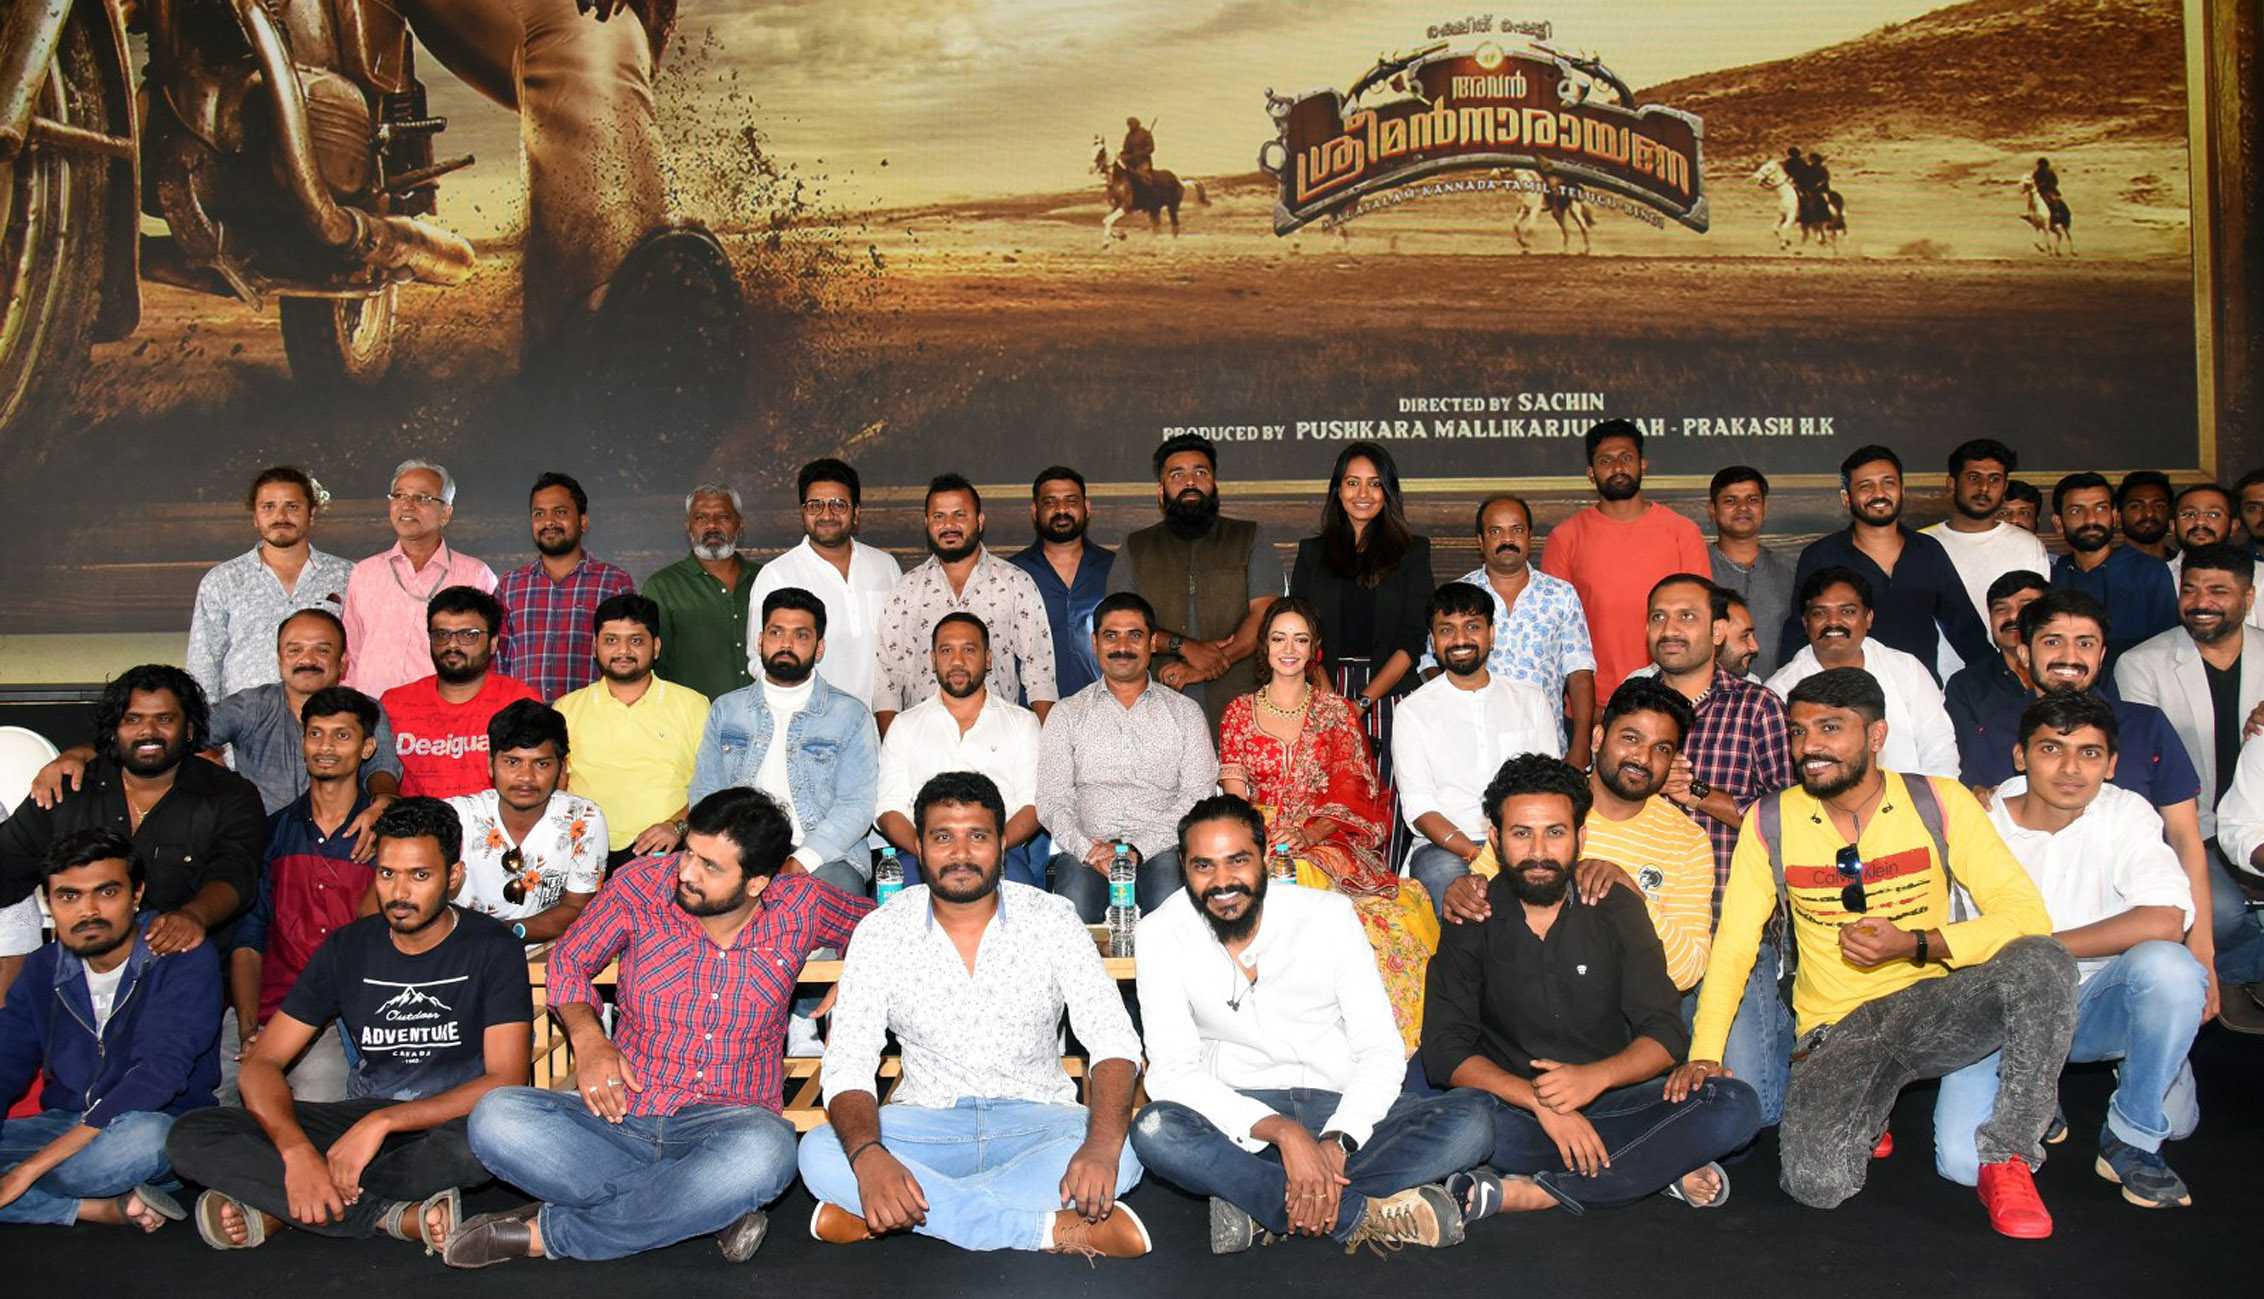 Trailer launch of the most awaited romantic action comedy film Avane shrimannarayana